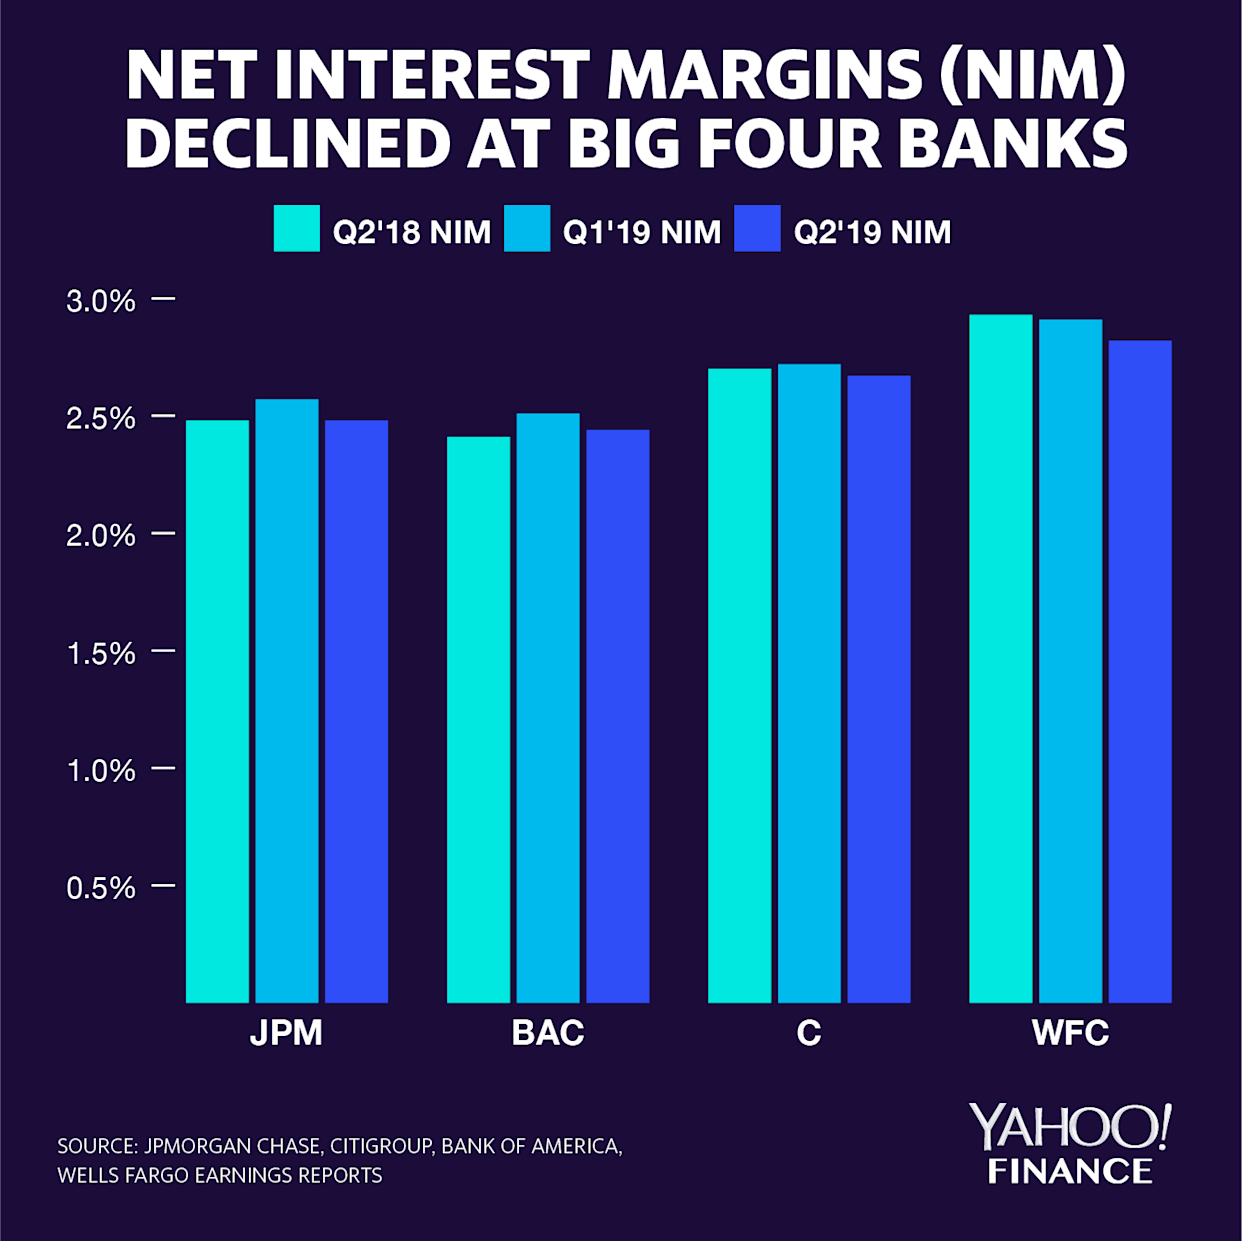 Last quarter, JPMorgan Chase, Bank of America, Citigroup, and Wells Fargo saw their net interest margins (NIM) decline. Net interest margin is calculated by taking interest collected on loans, subtracting interest paid on deposits, and dividing that difference by average invested assets. Credit: David Foster / Yahoo Finance